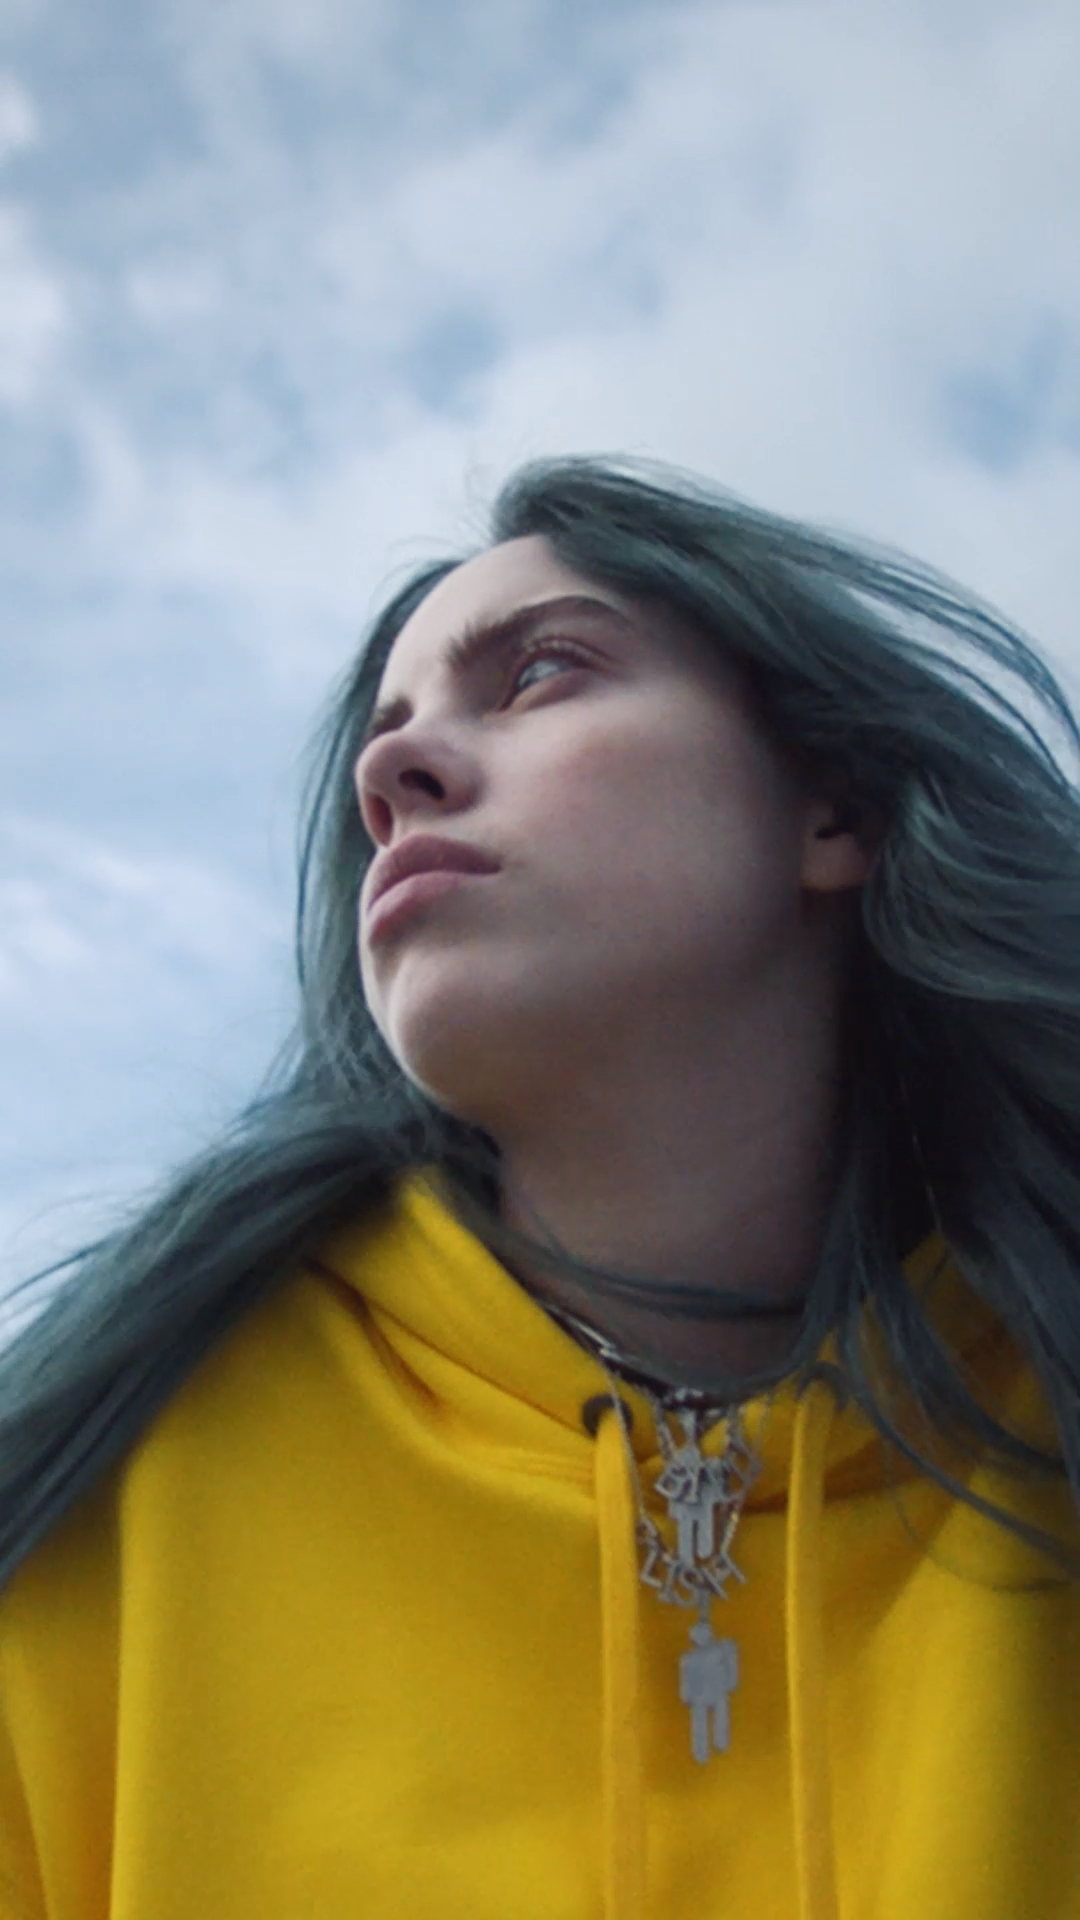 635bfb78dfb8b Billie Eilish takes the sky in the latest campaign from CALVIN KLEIN ...